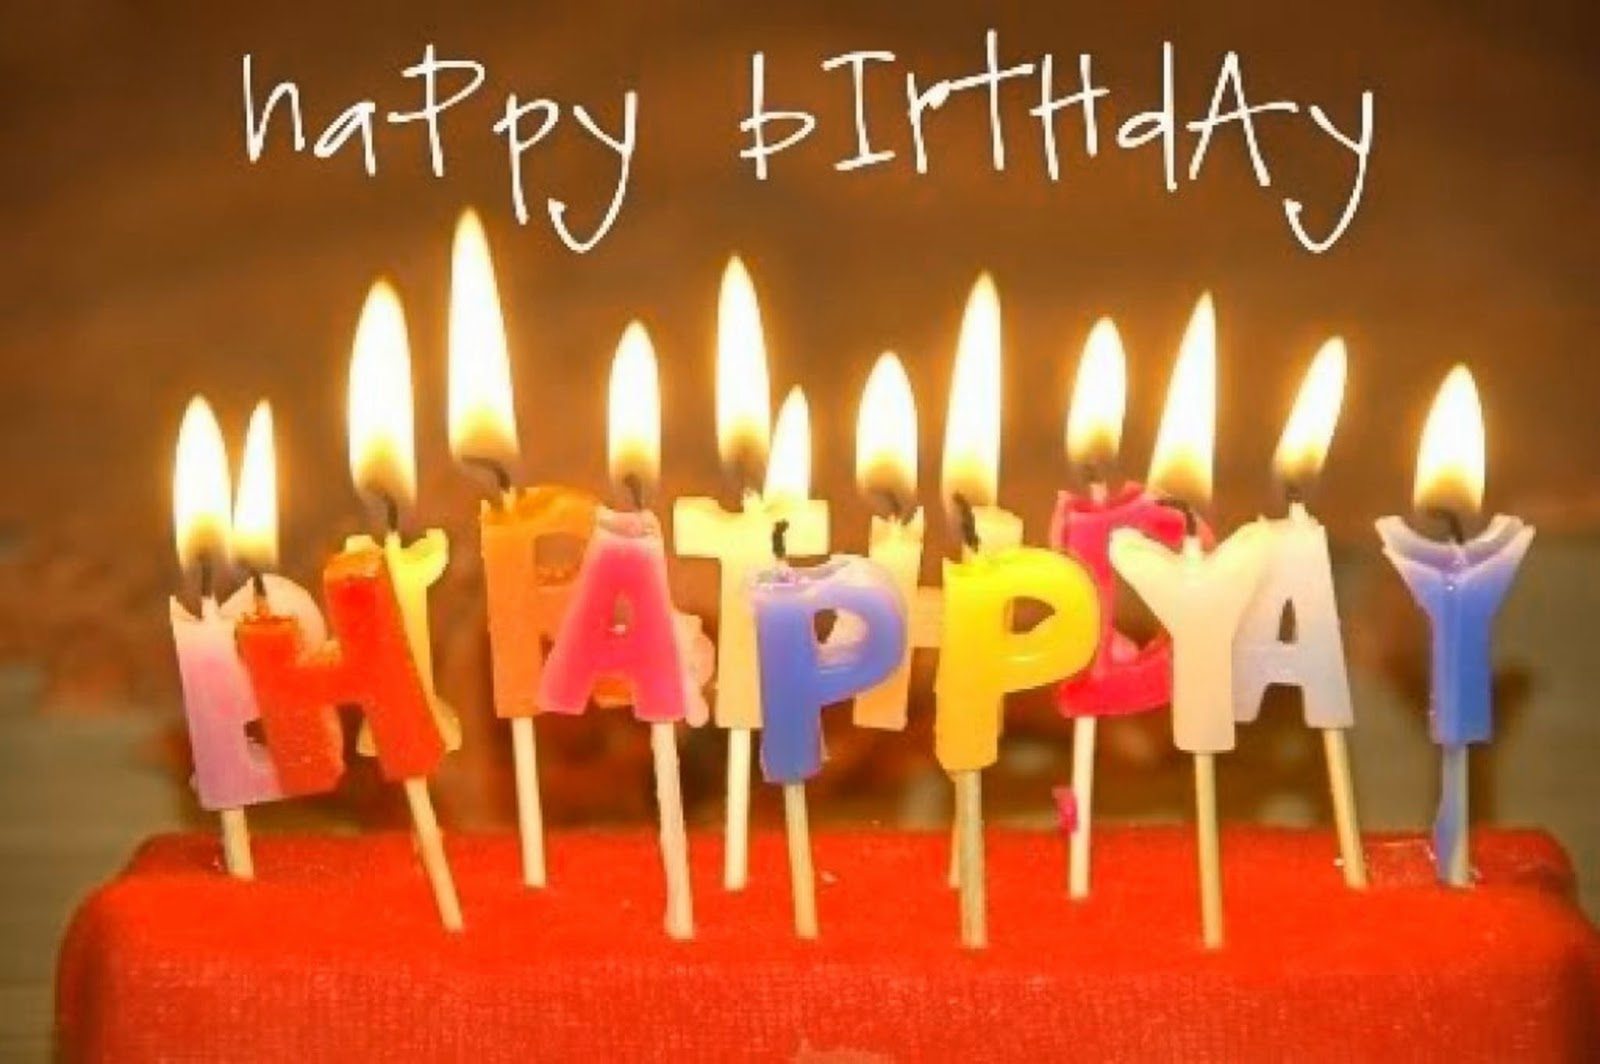 Birthday Candle Gif To flame flames many for output flame since: all ...